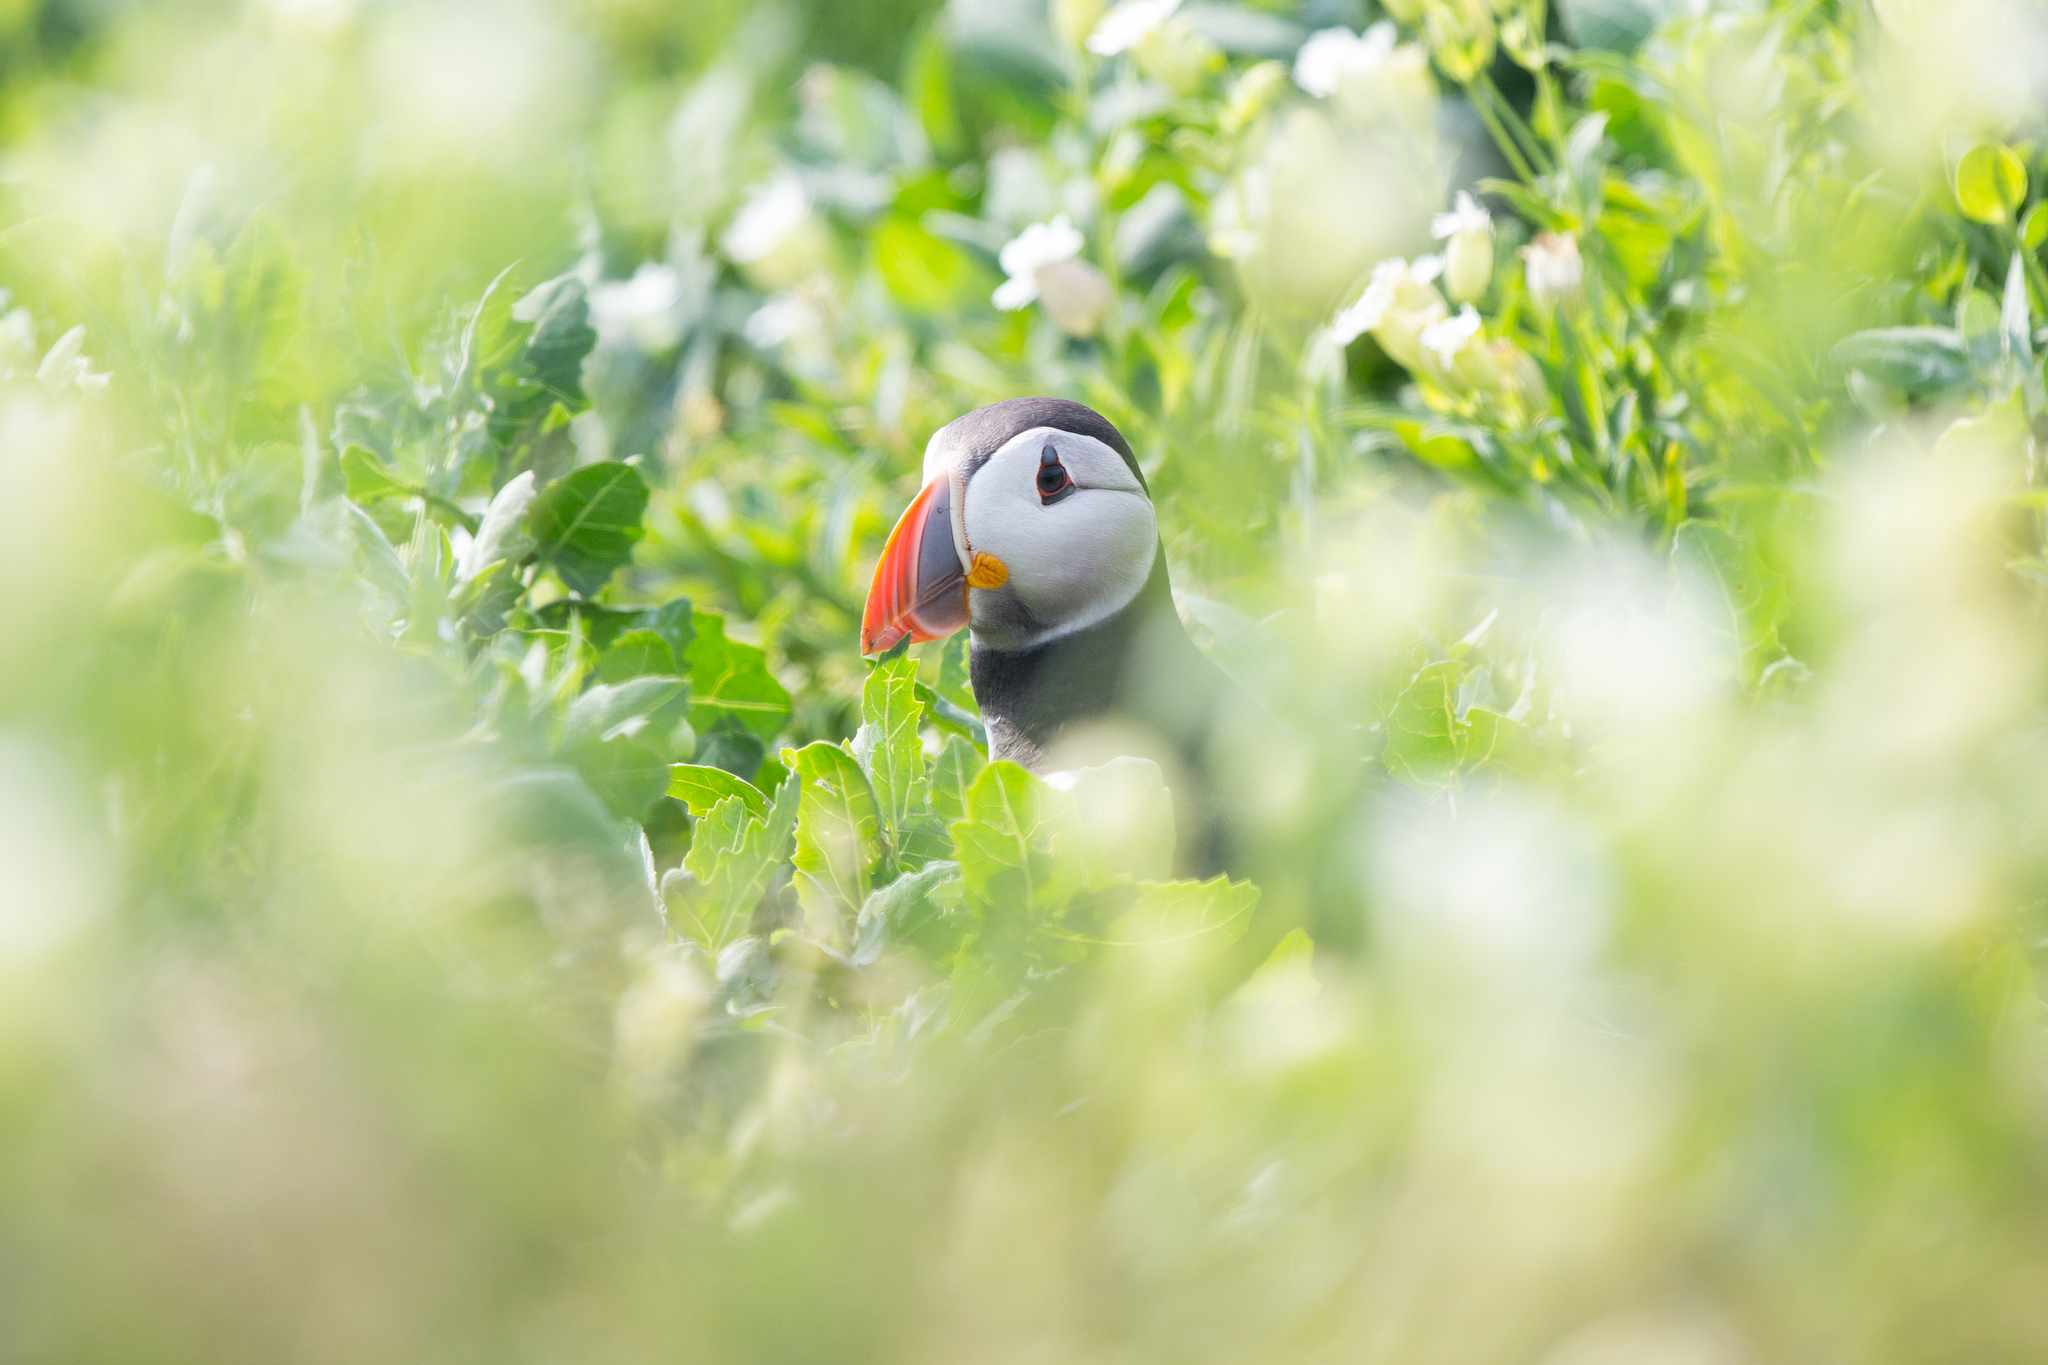 When the puffins land onto breeding islands in April, they're often a little nervous as they return and check their burrows. This puffin was walking in and out of burrows for almost 10 minutes- maybe he had forgotten which was his! © Danielle Connor